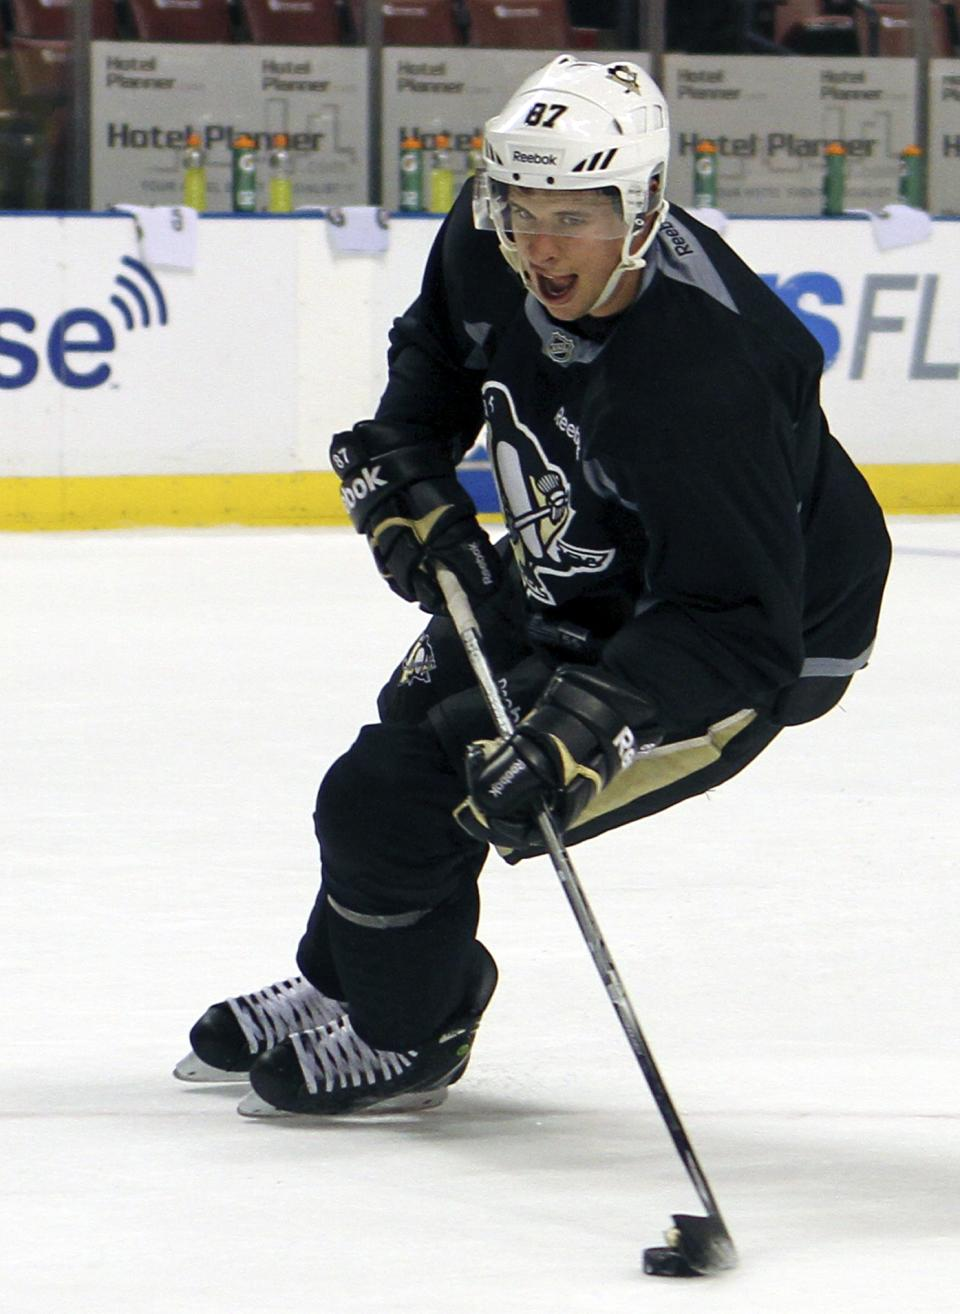 Pittsburgh Penguins star Sidney Crosby skates during practice in Sunrise, Fla., Friday, Jan. 13, 2012. Crosby skated with his teammates for the first time in more than a month on Friday but still has no idea when he'll be cleared to practice, let alone see action in a game.   (AP Photo/Alan Diaz)